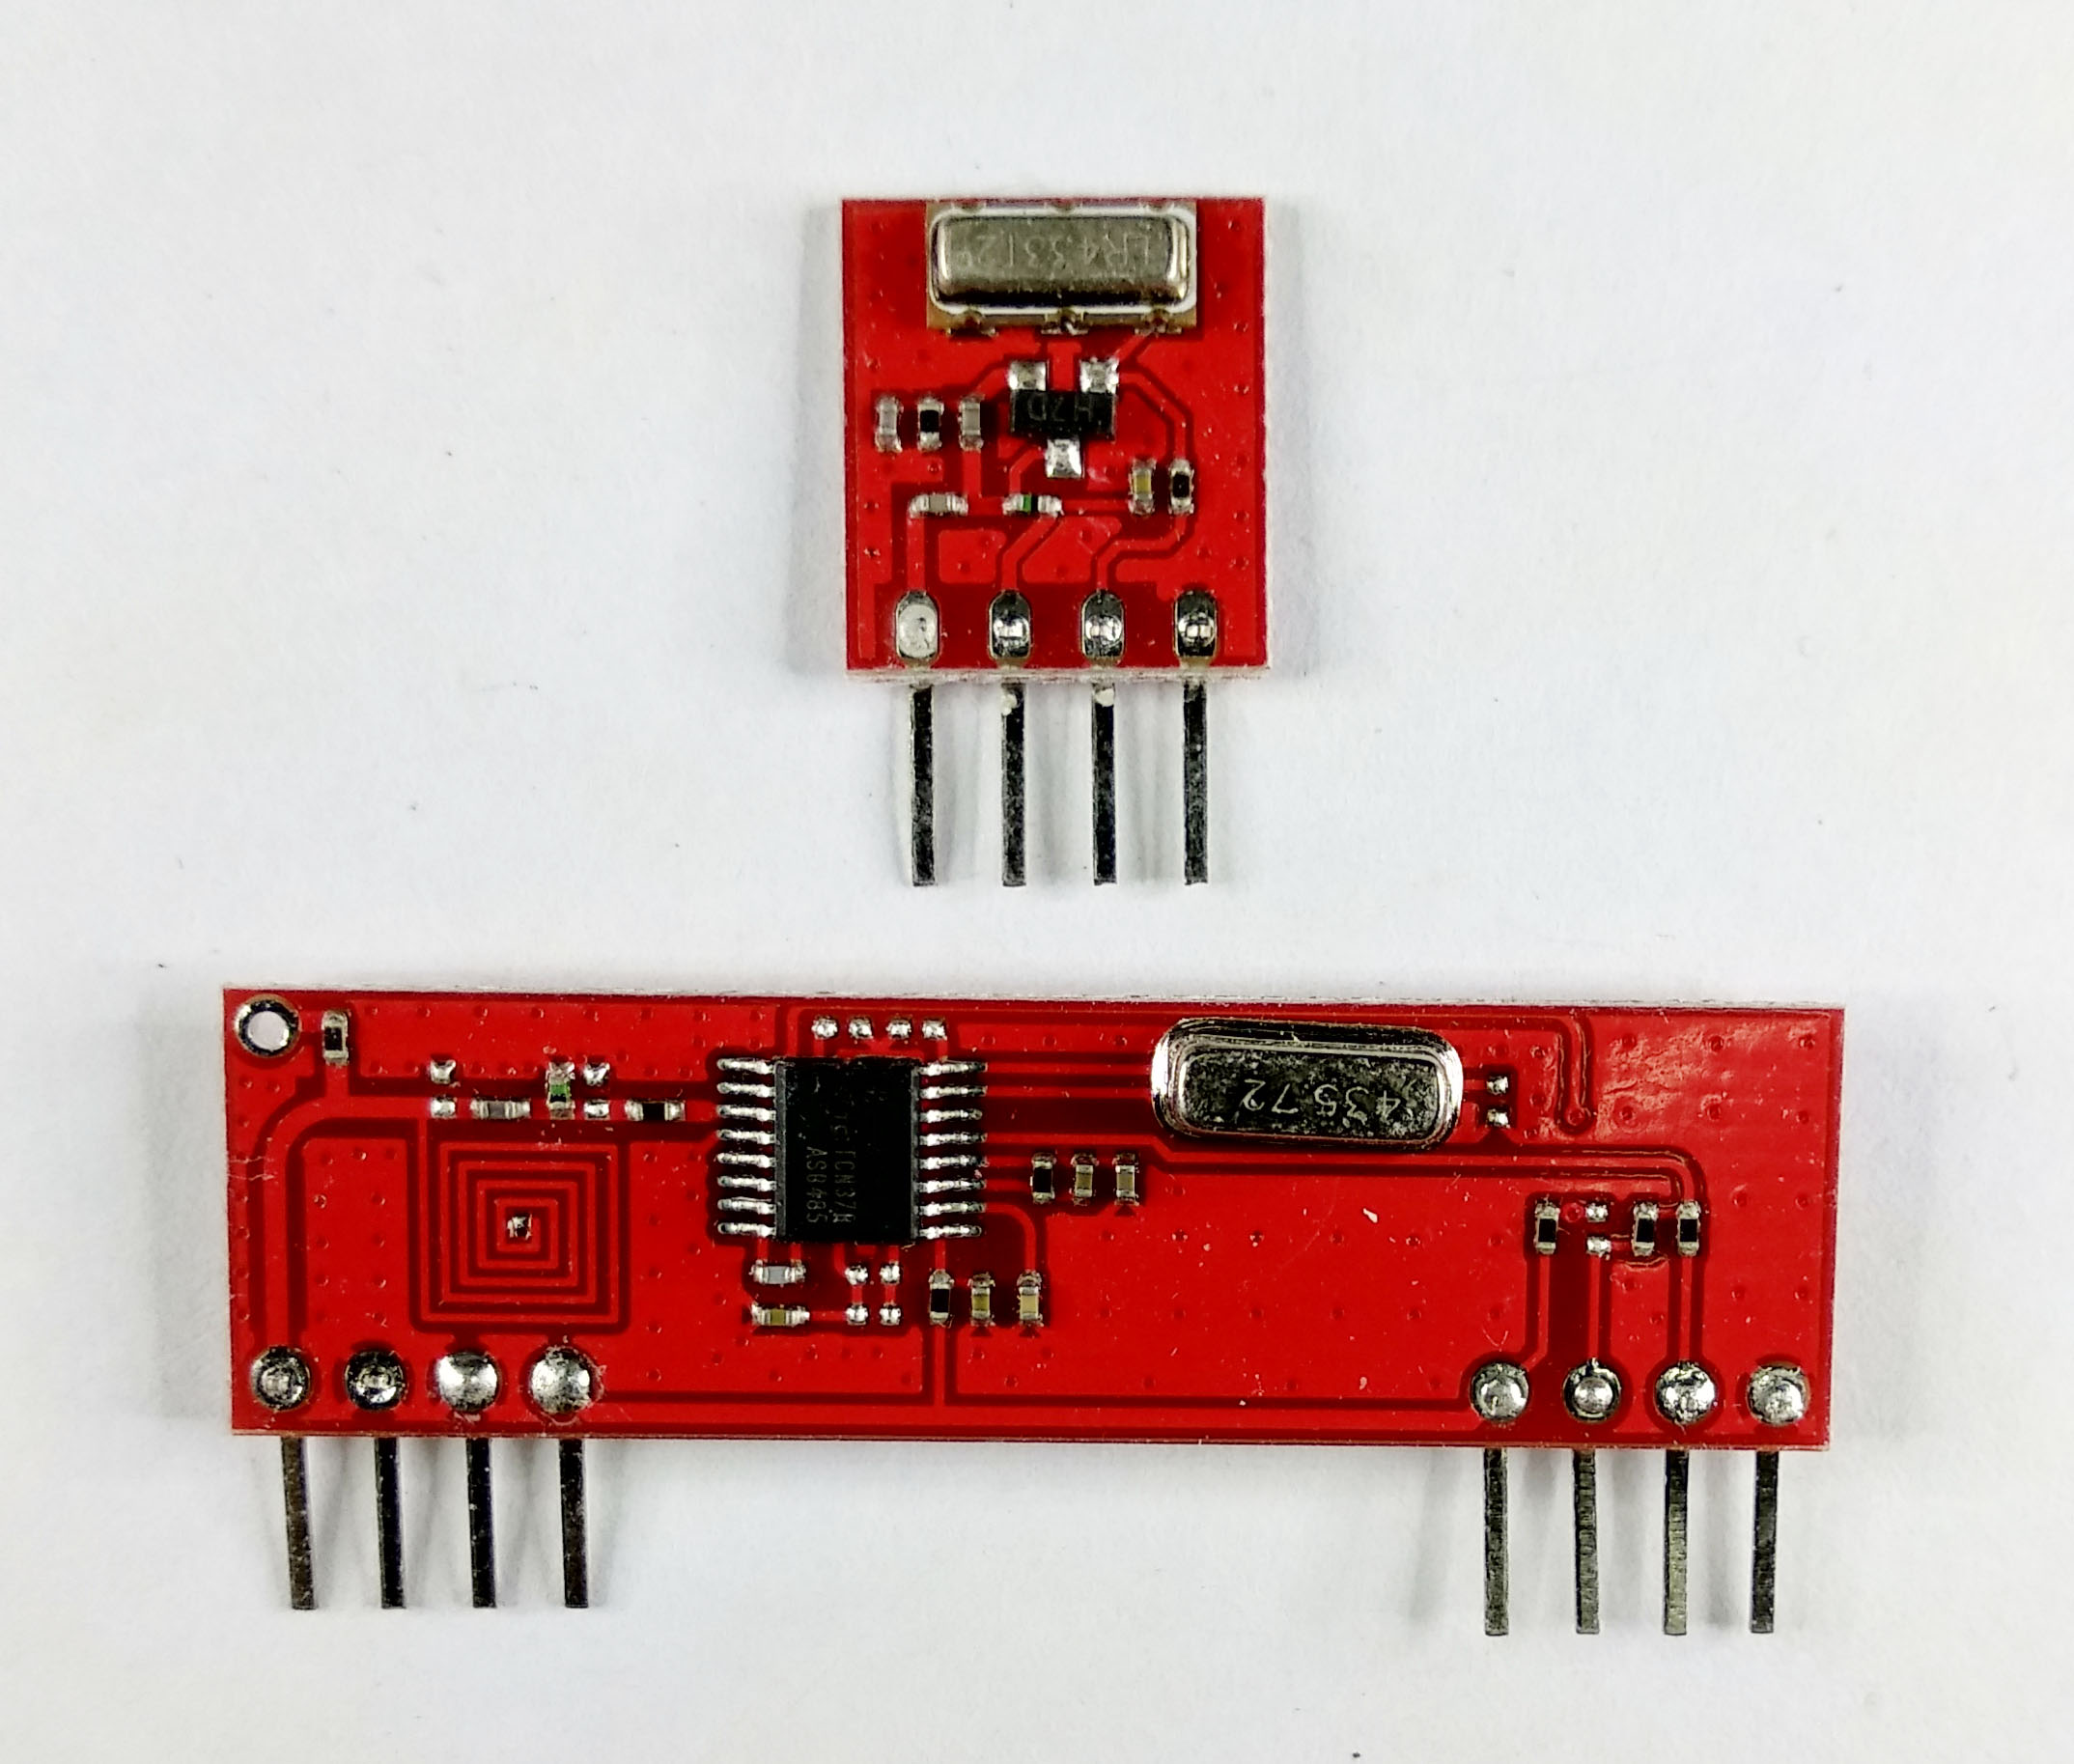 Pioneer Electronic Store Megashop Integrated Circuits Suppliers For Sale 434 Mhz Wireless Module Arm